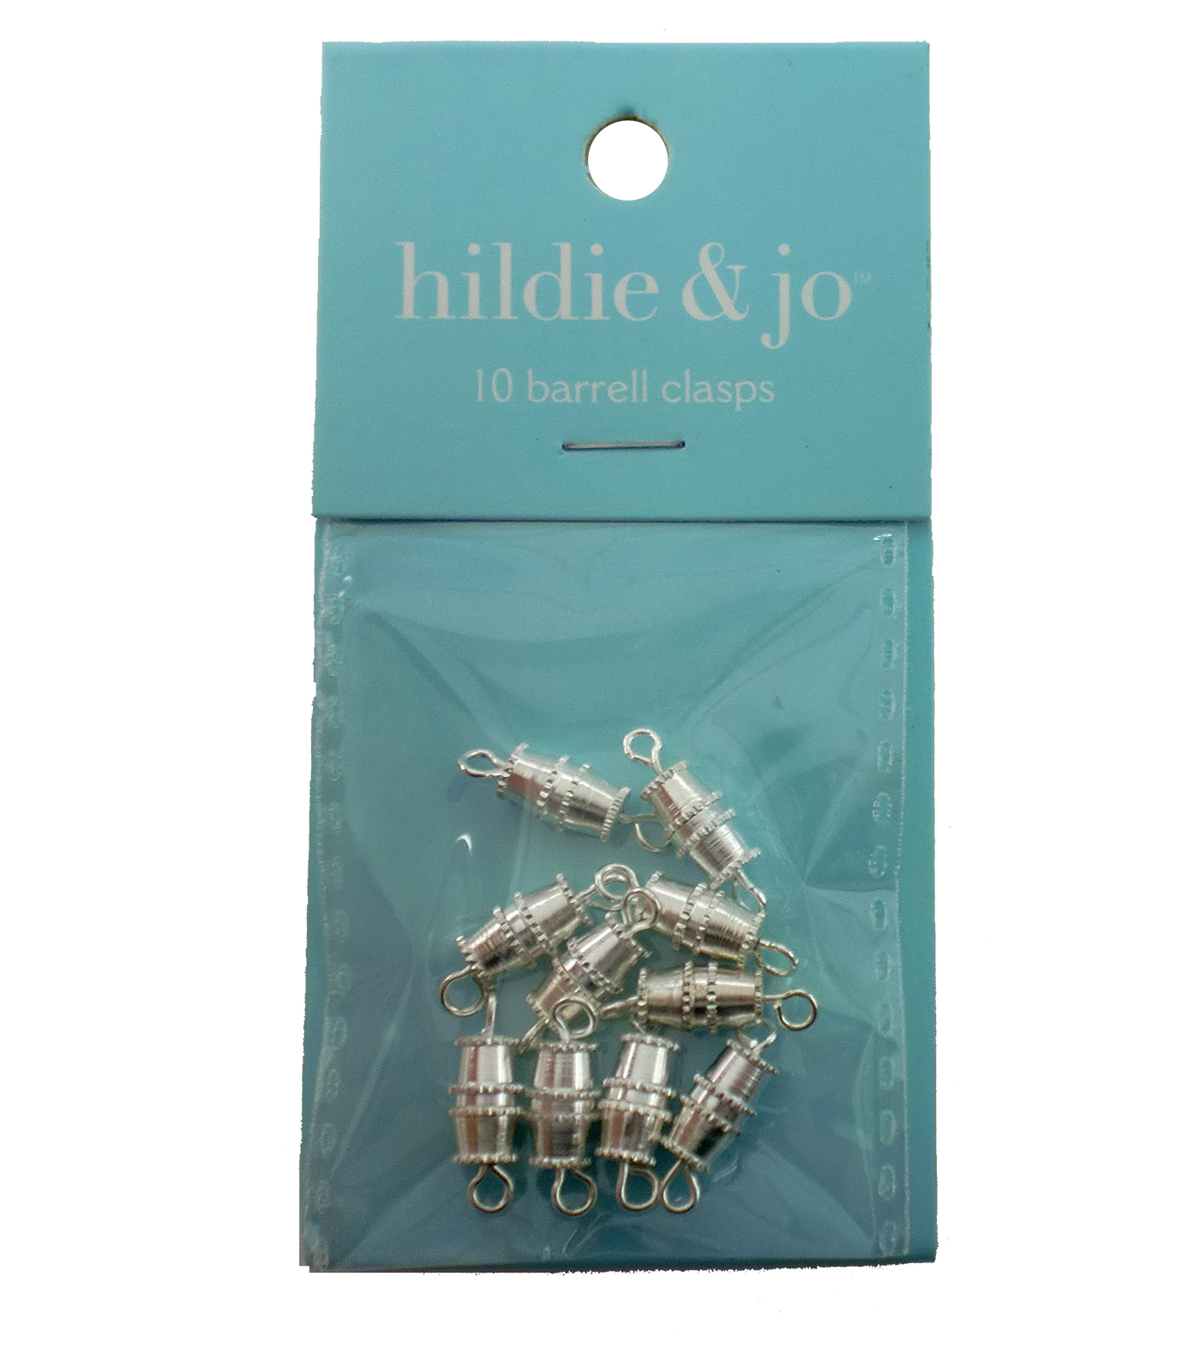 hildie & jo™ 10 Pack Barrel Clasps-Silver